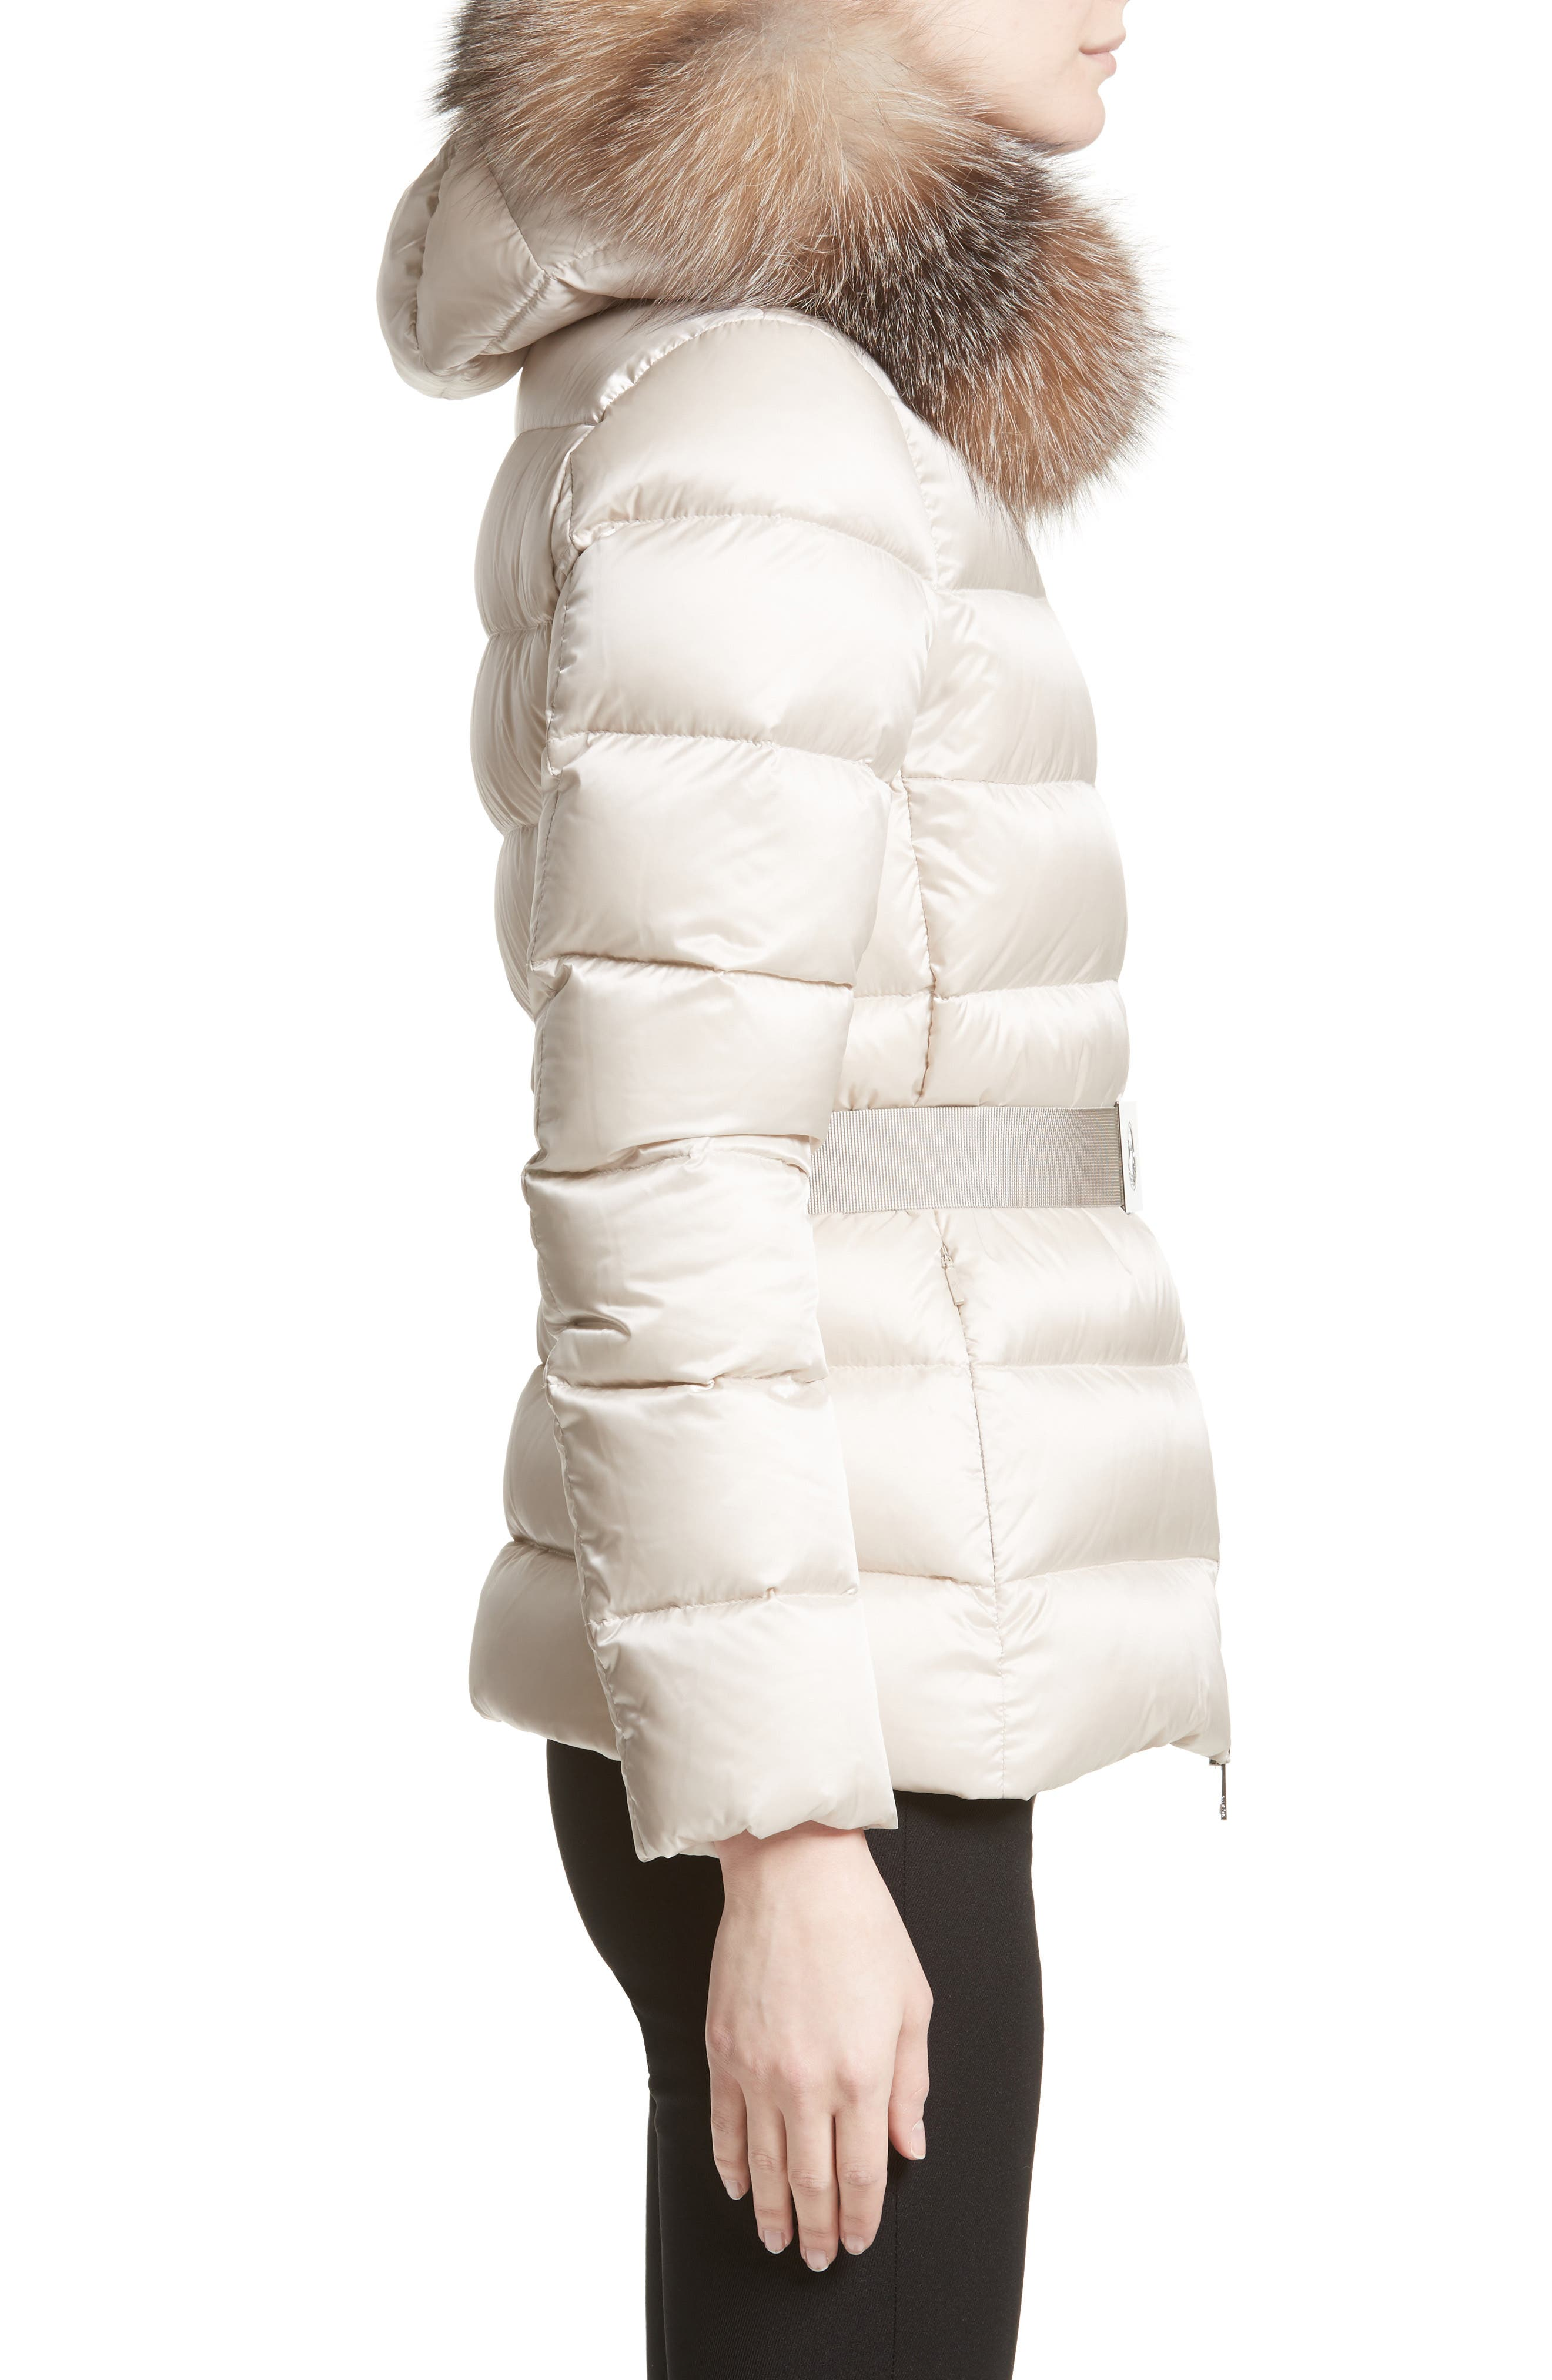 Tatie Belted Down Puffer Coat with Removable Genuine Fox Fur Trim,                             Alternate thumbnail 3, color,                             CHAMPAGNE